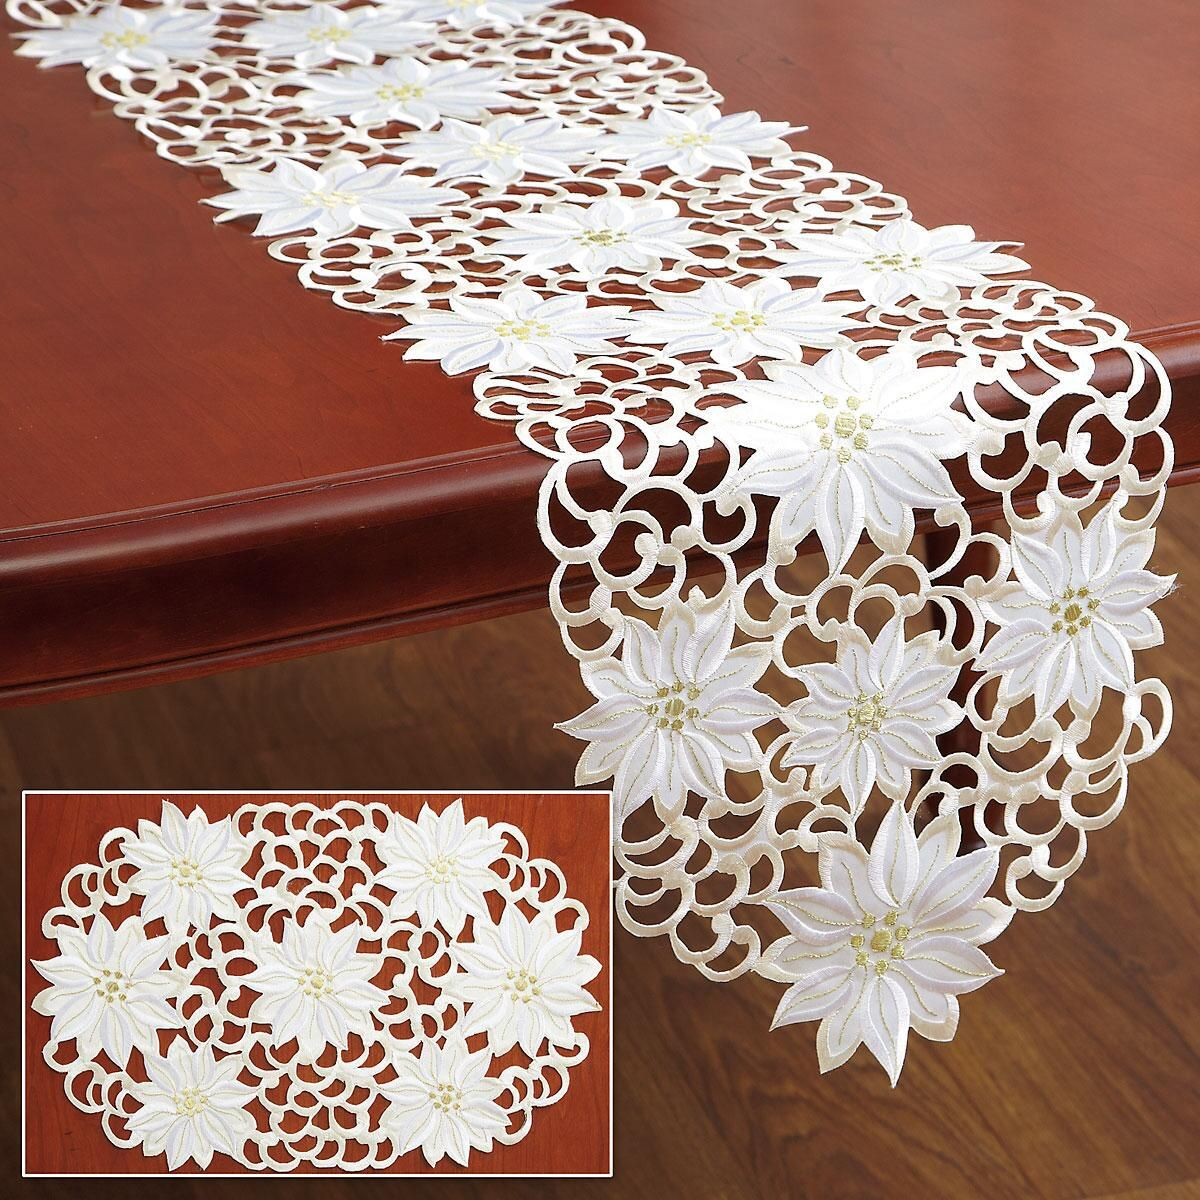 Best Kitchen Gallery: White Poinsettia Table Runner Place Mats Current Catalog of Table Runners  on rachelxblog.com